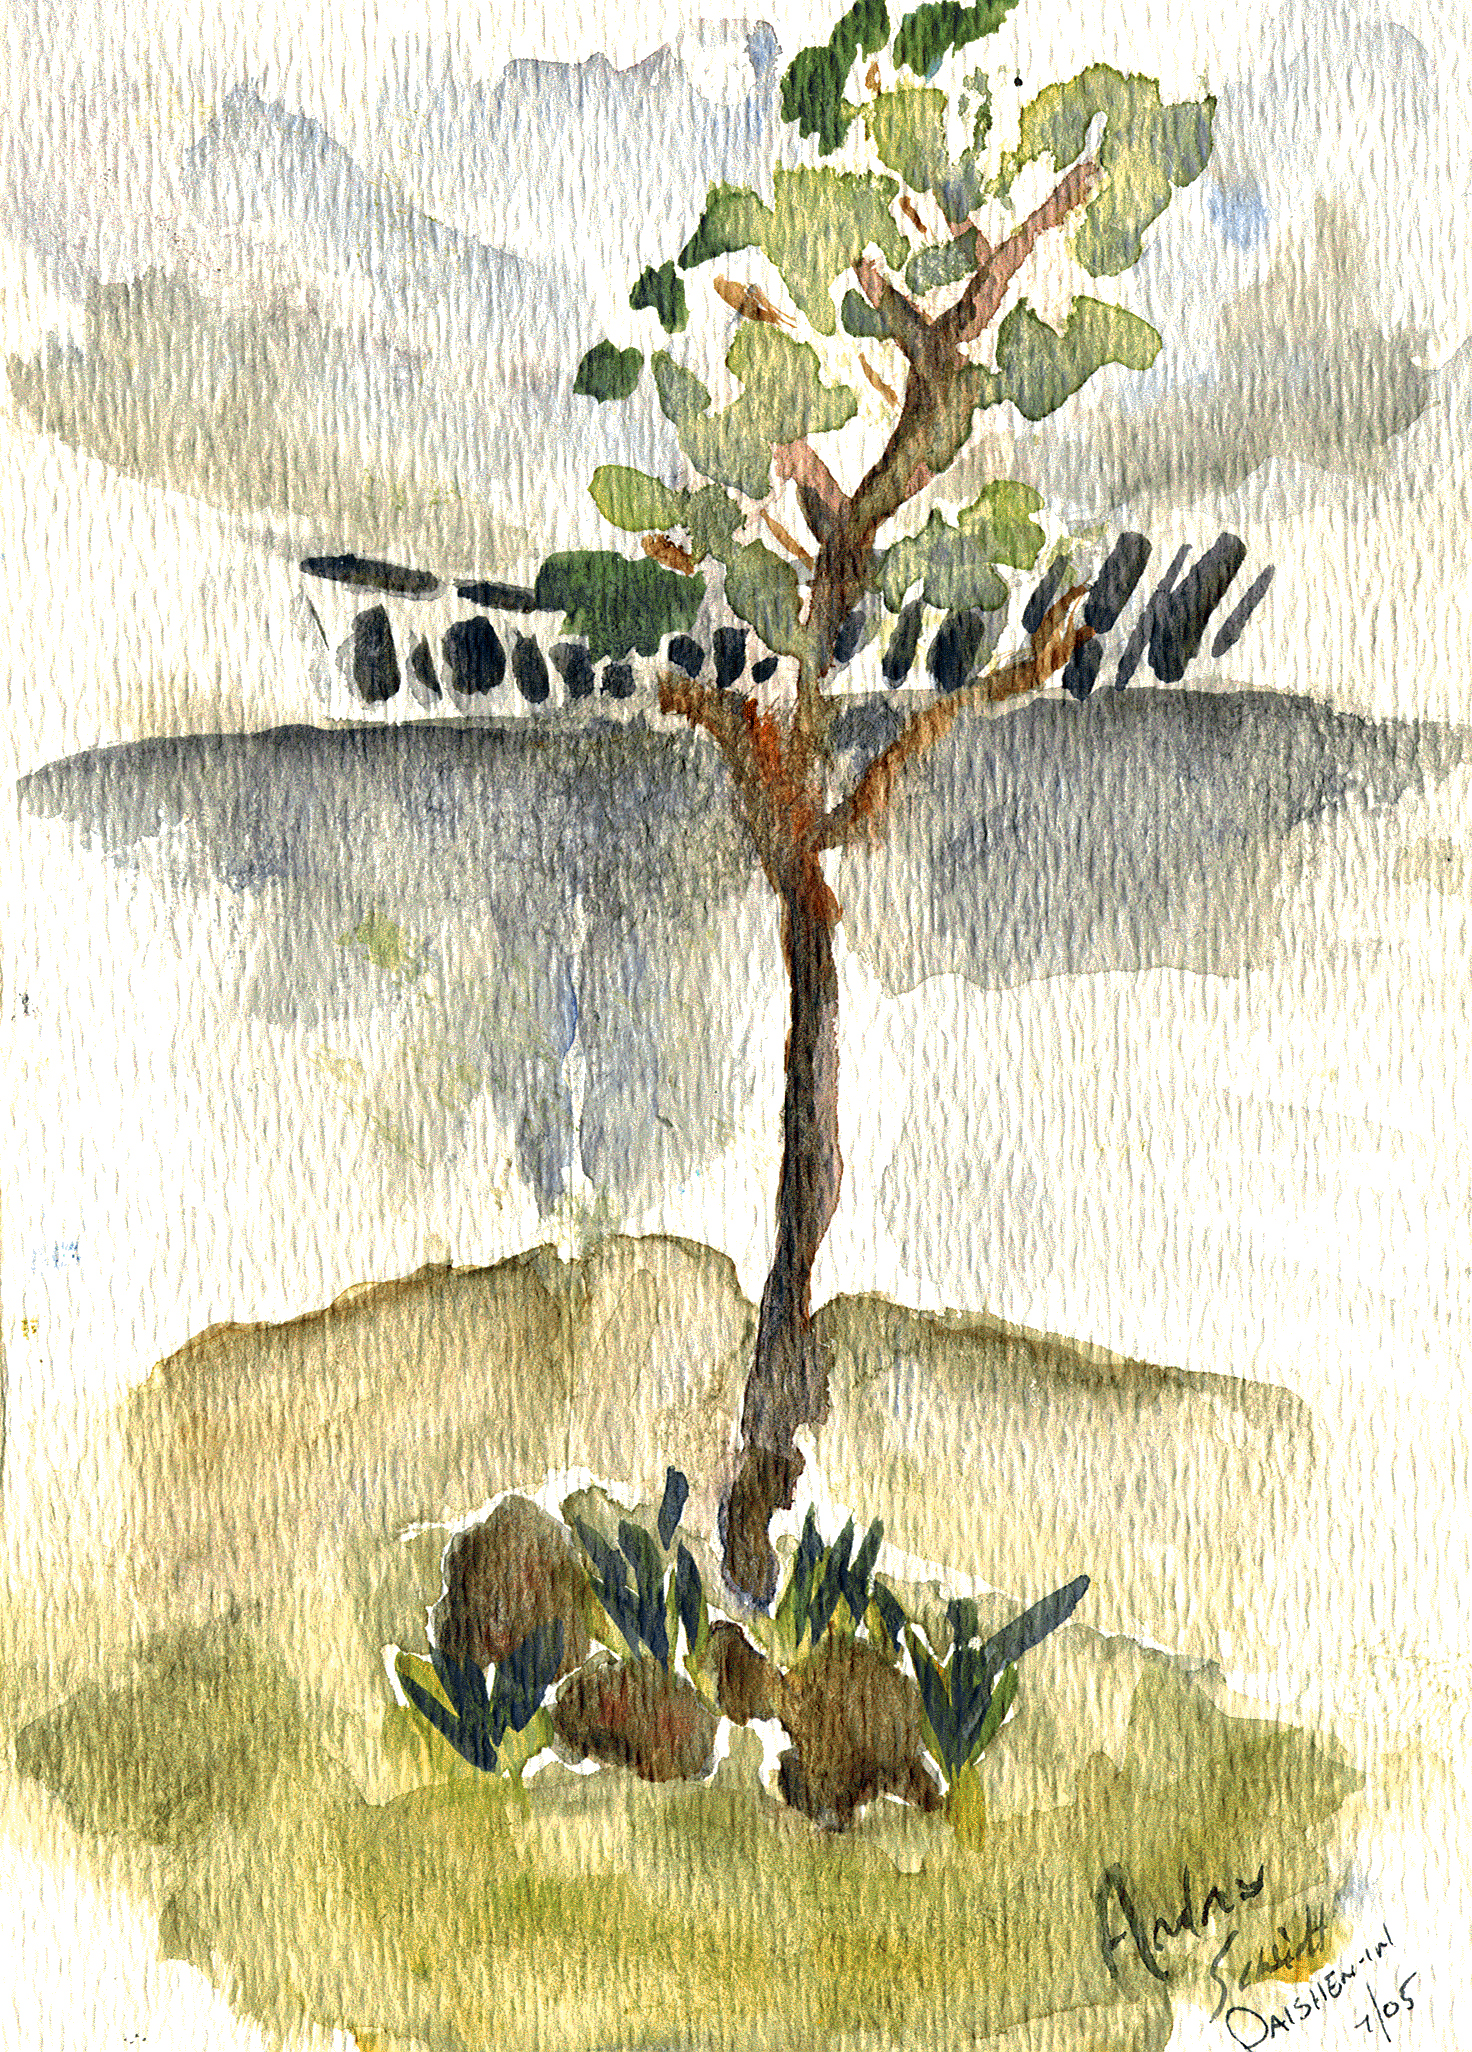 watercolor_004b.jpg